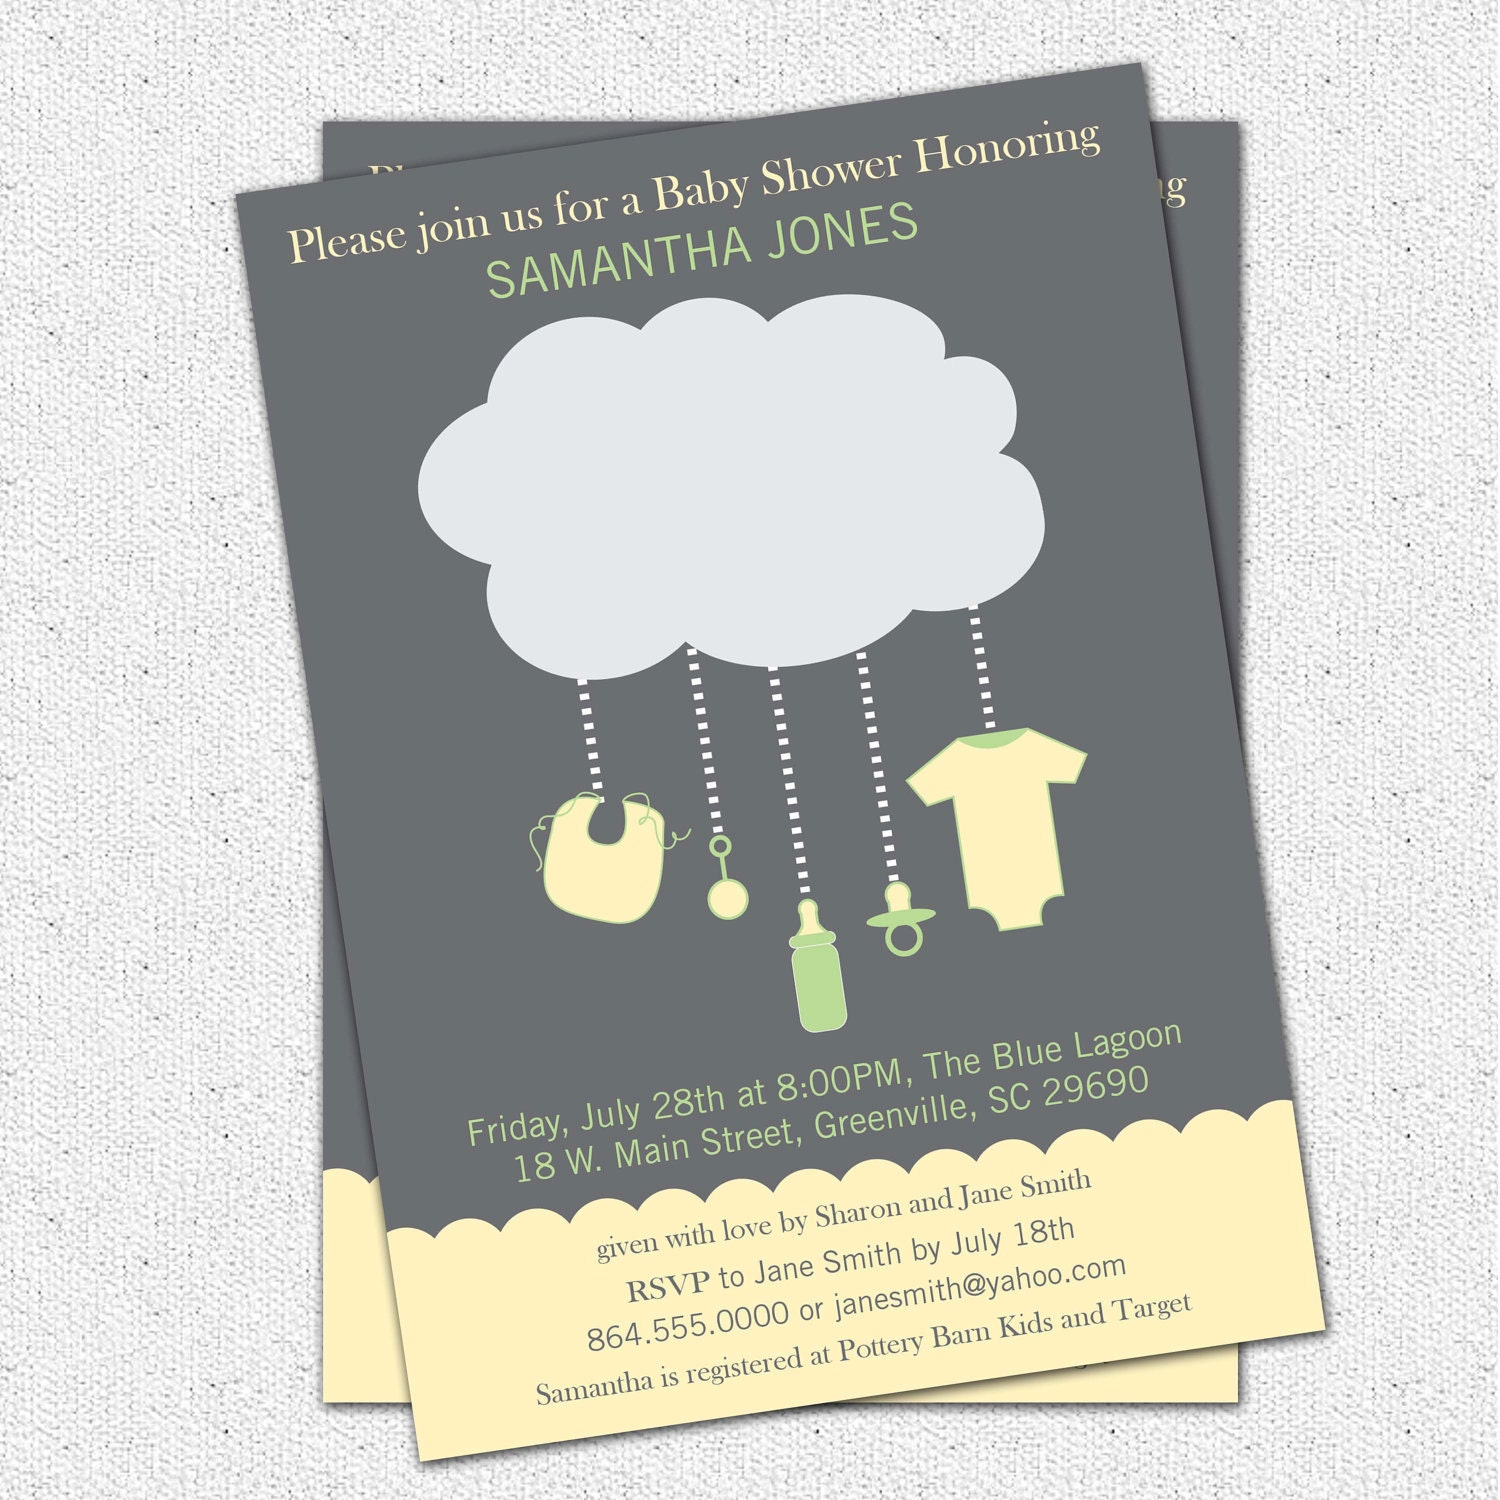 Unisex Baby Shower Invites is great invitations layout